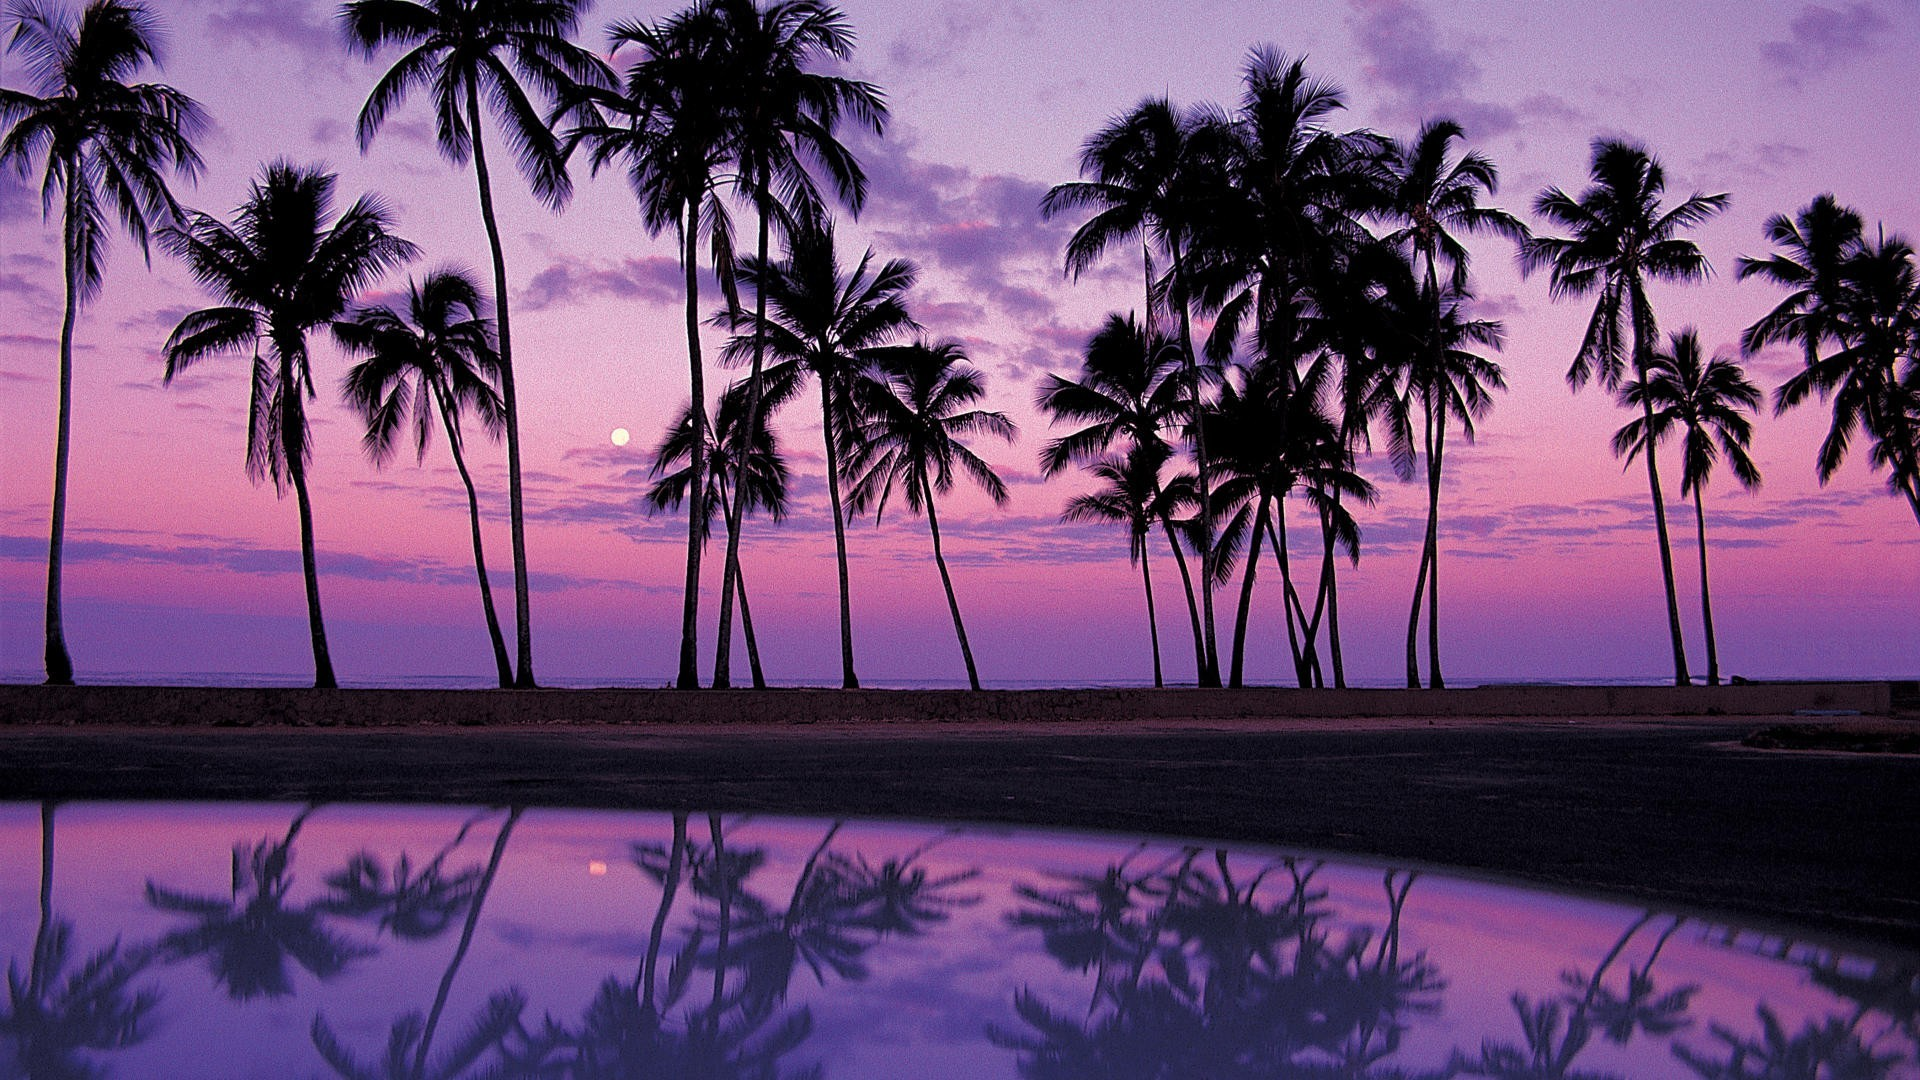 1920x1080 Desktop Palm Tree Backgrounds.